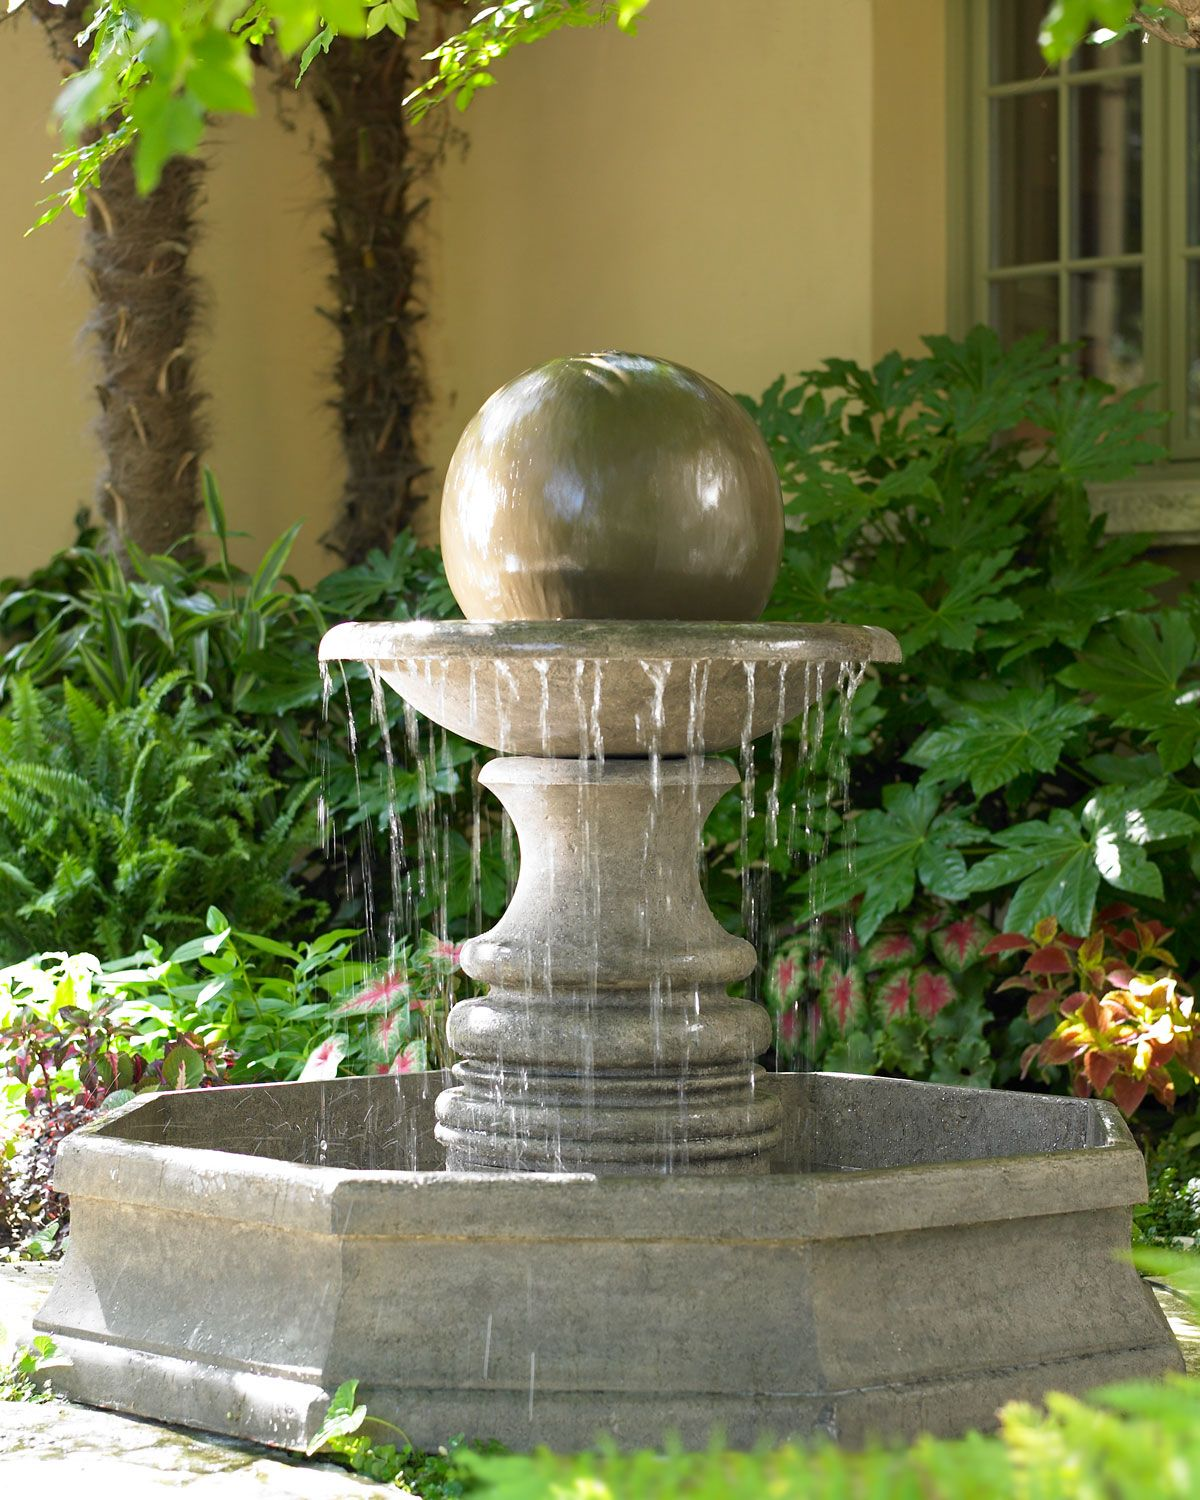 Sphere Fountain Horchow Fountains Outdoor Garden Fountains Outdoor Garden Fountains